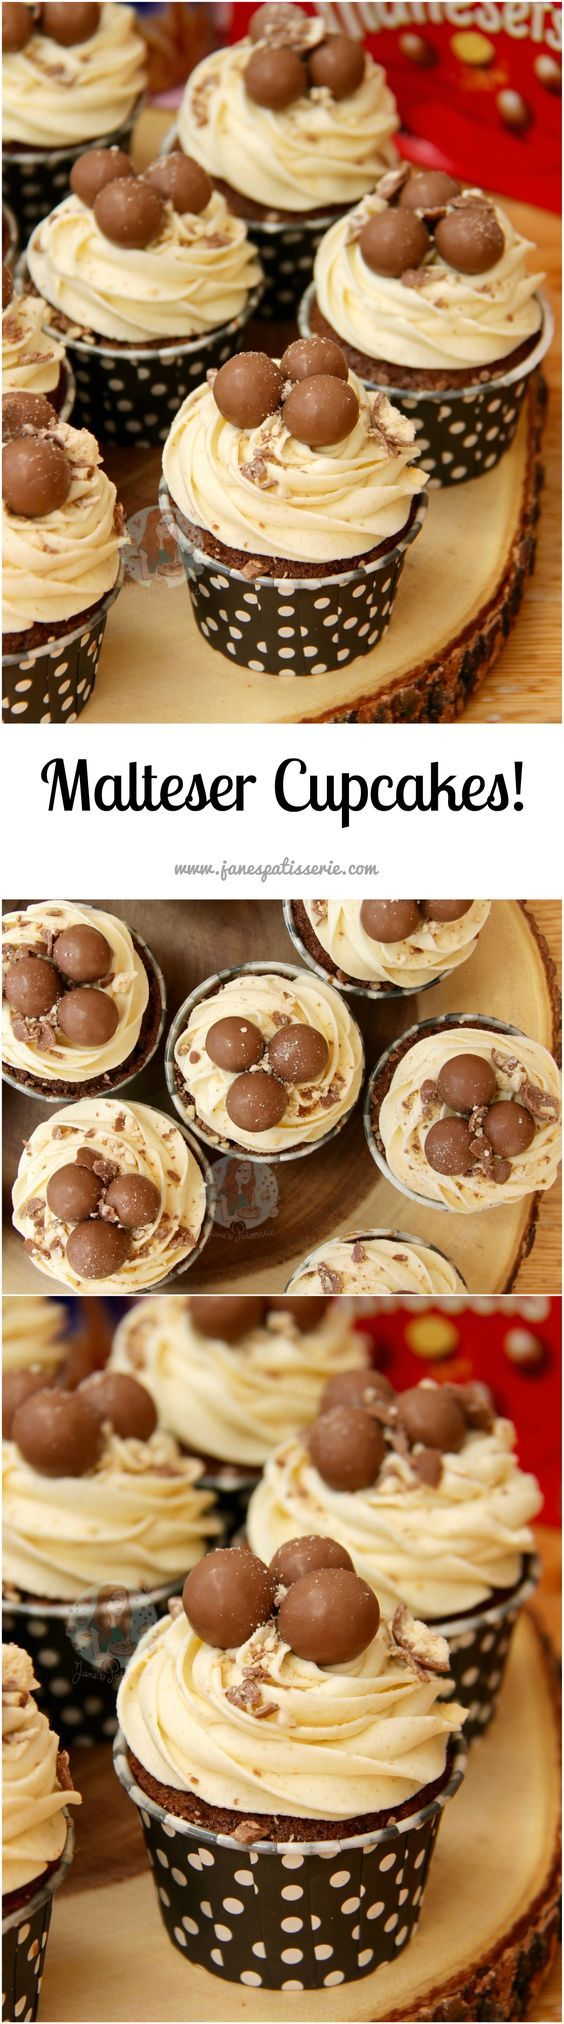 cool Chocolate Malt Cupcakes with Malt Buttercream Frosting